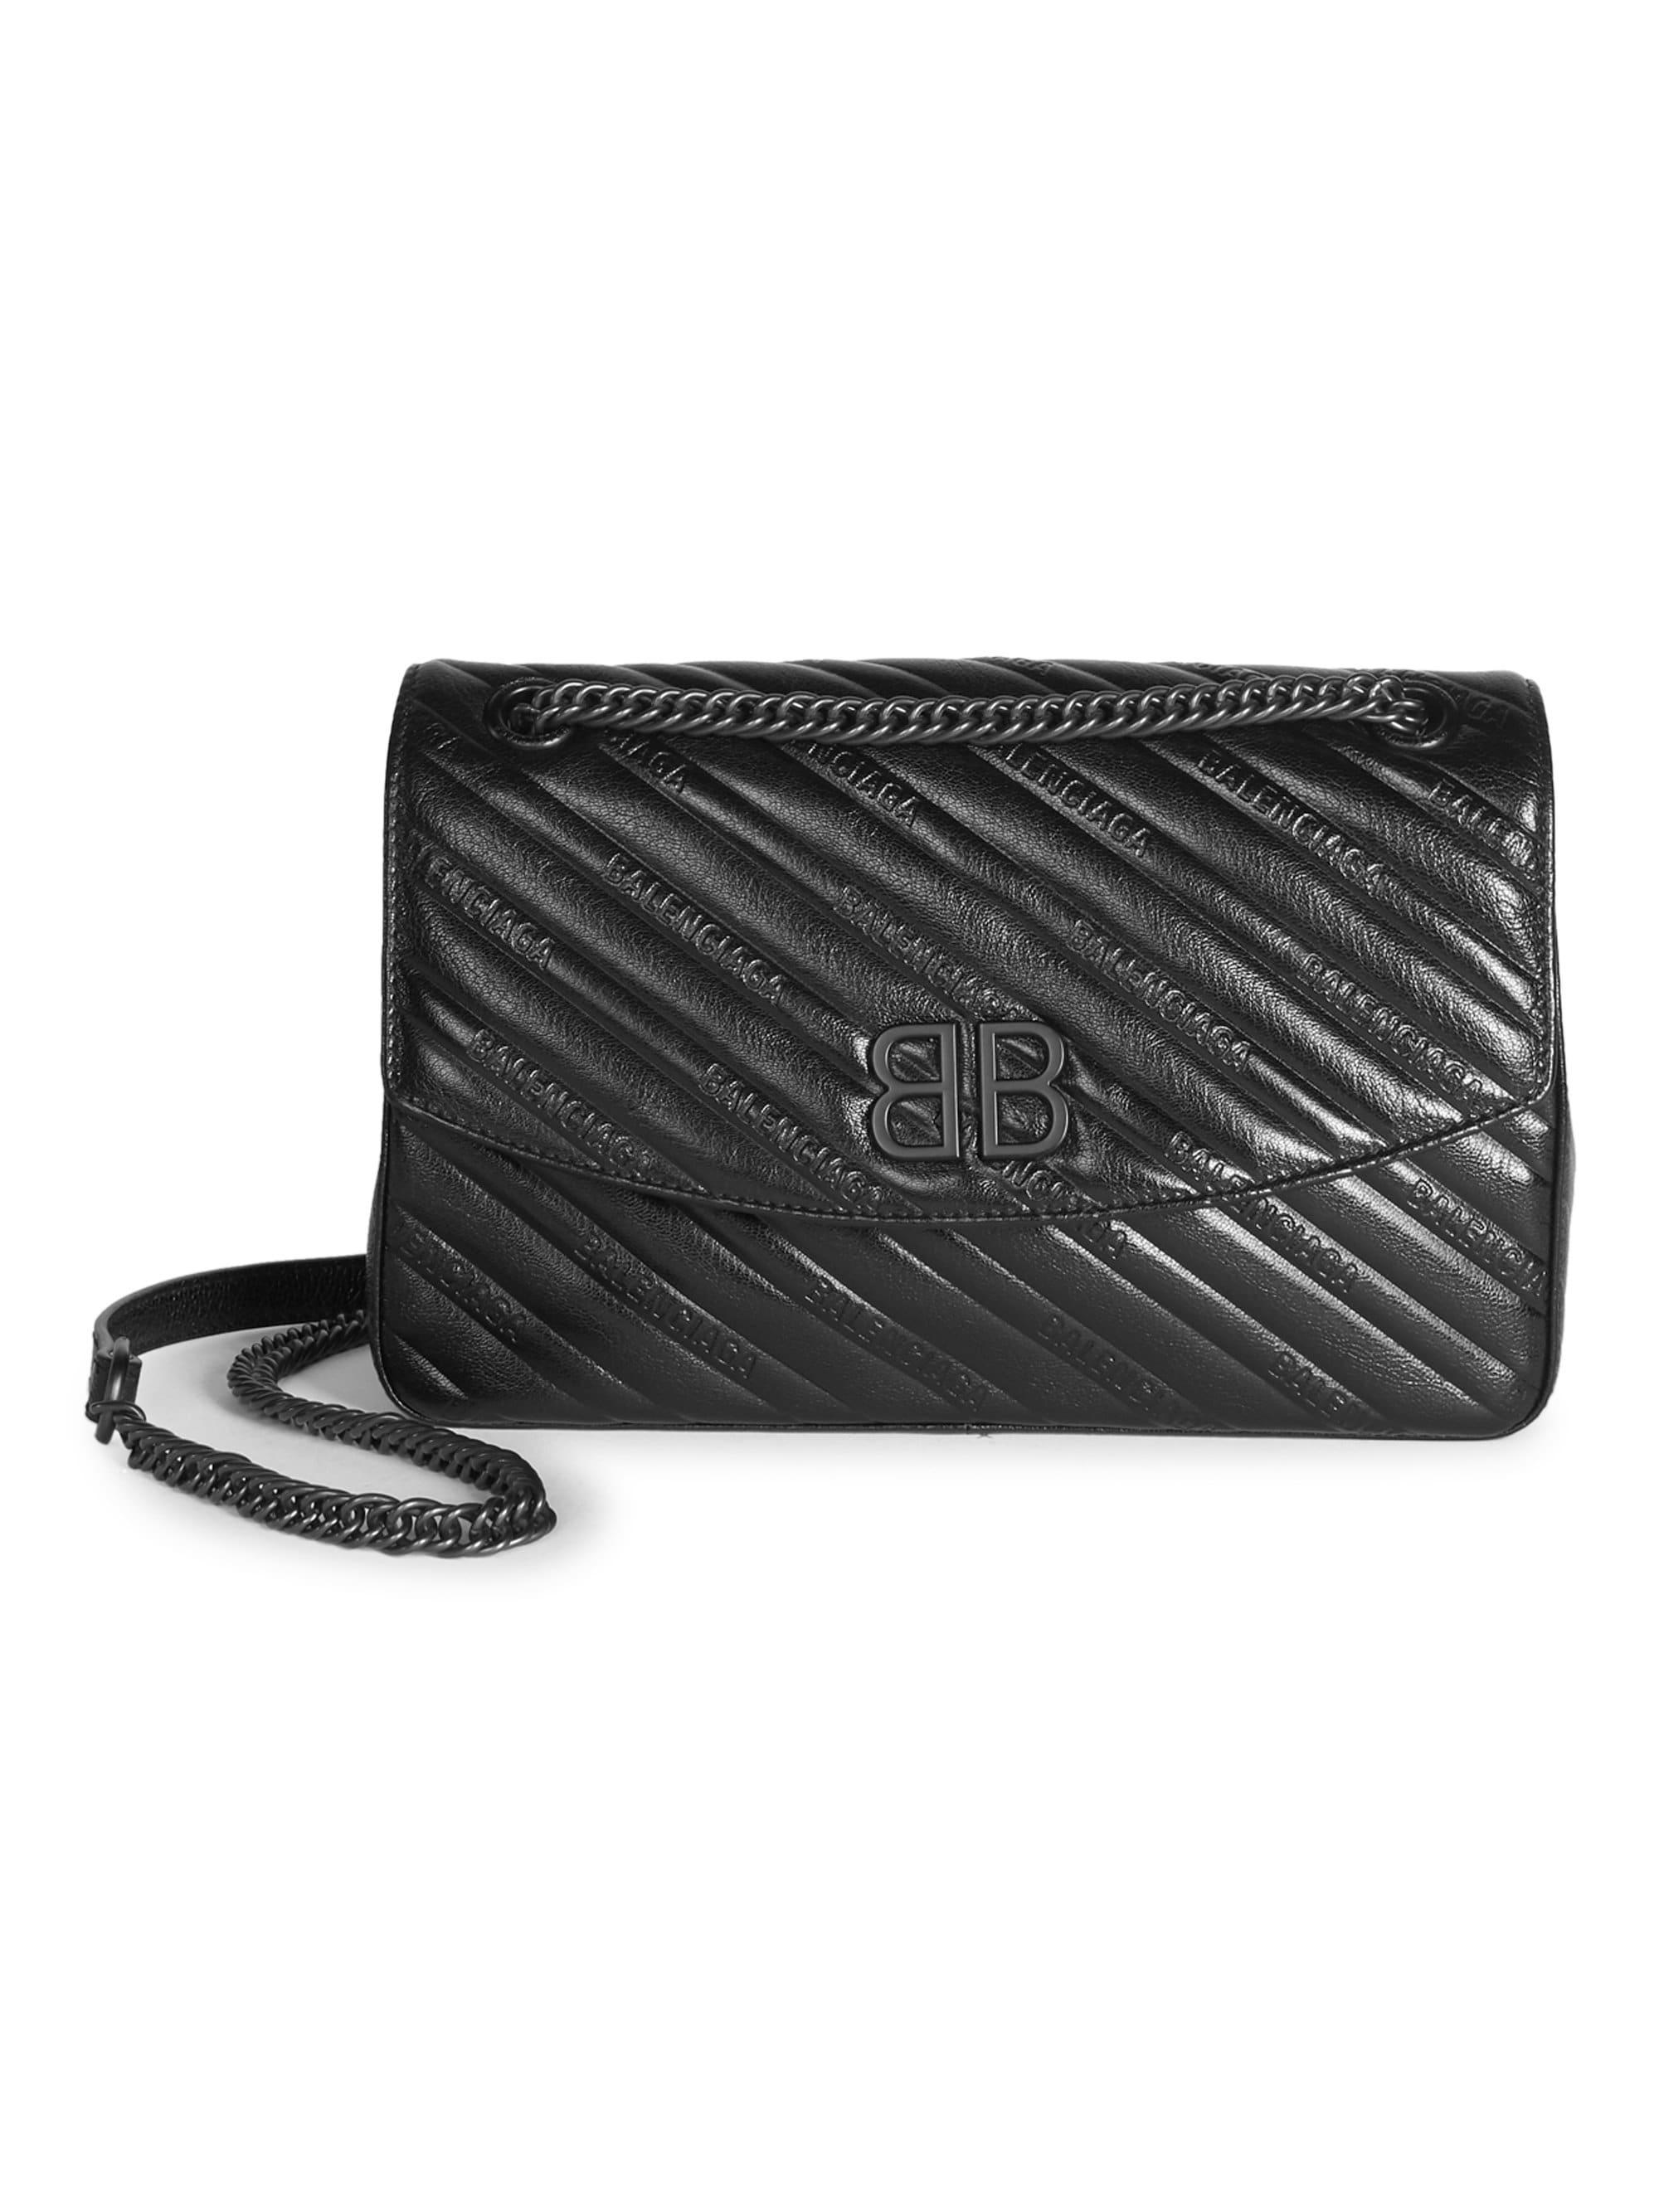 c28a8917131b Balenciaga - Women's Quilted Leather Logo Crossbody - Black - Lyst. View  fullscreen